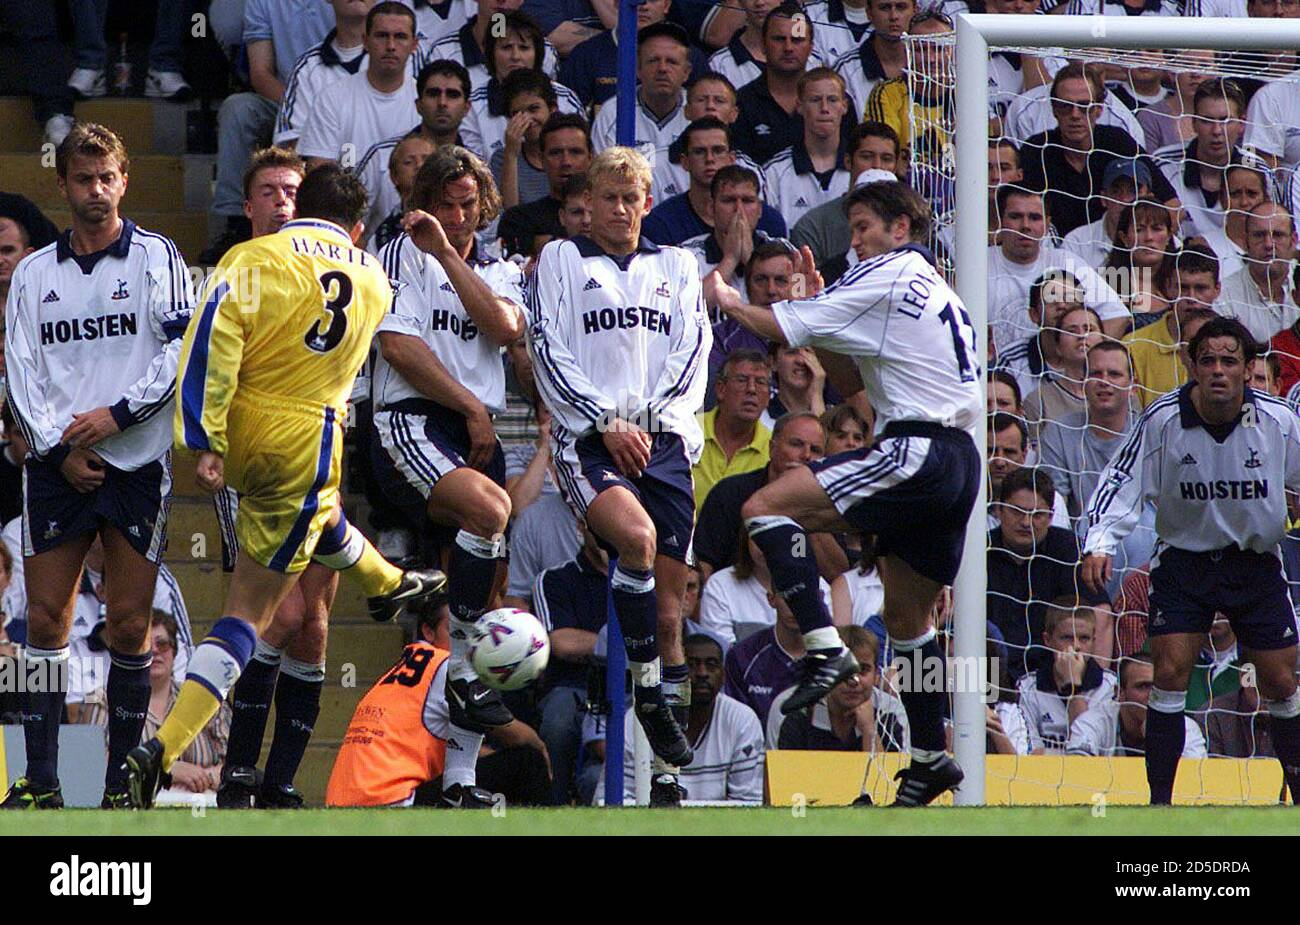 Leeds United player Ian Harte (3) kicks the ball from a free kick to score  the winning goal against Tottenham Hotspur during their premier league  clash at White Heart Lane August 28.